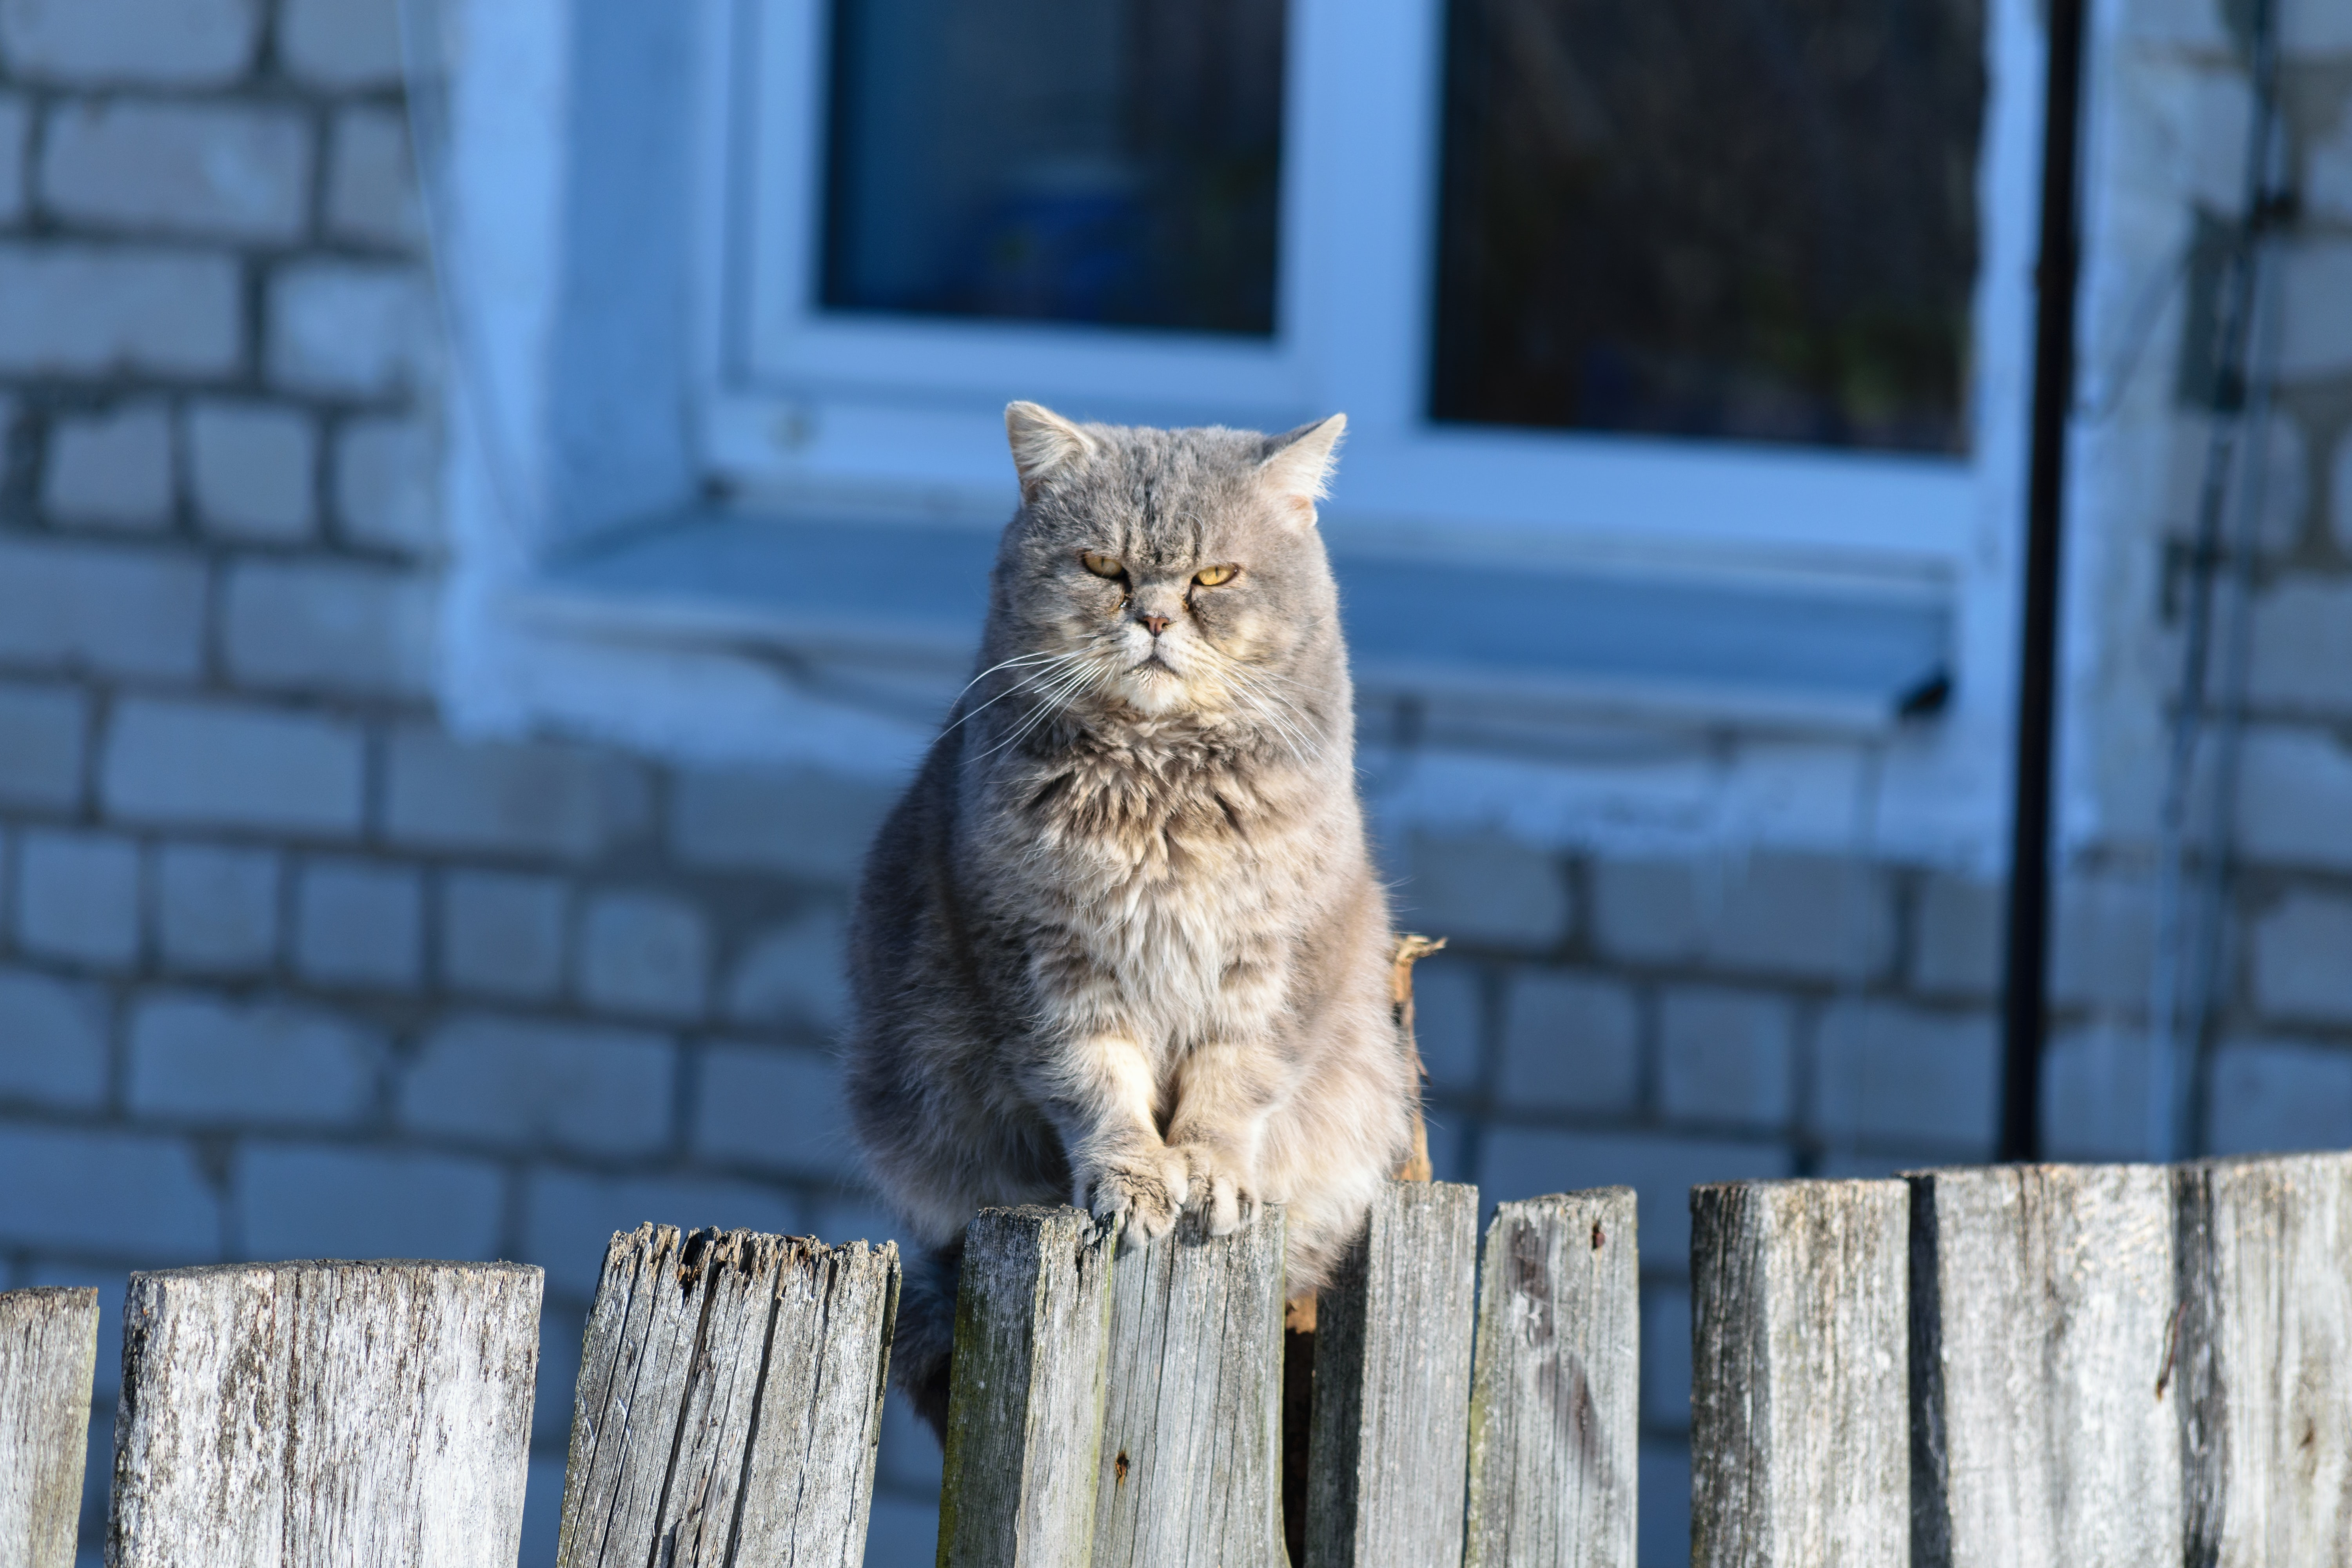 person taking photo of grey cat standing on wooden fence during daytime